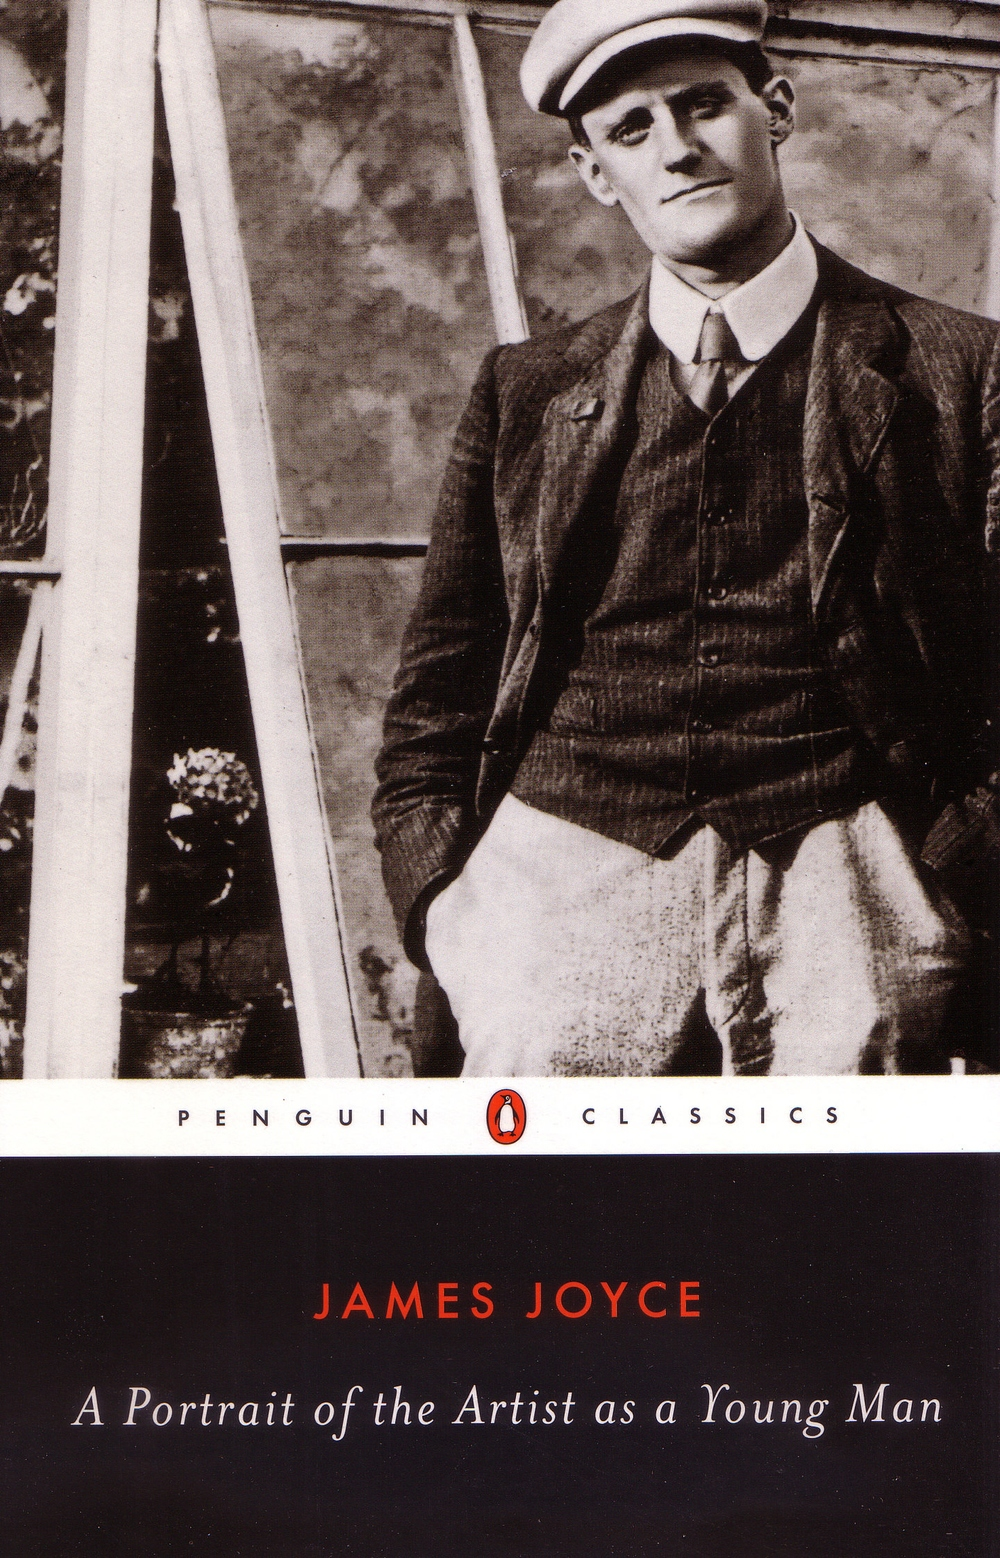 A Portrait of the Artist as a Young Man   by James Joyce (via    Penguin Books Australia   )